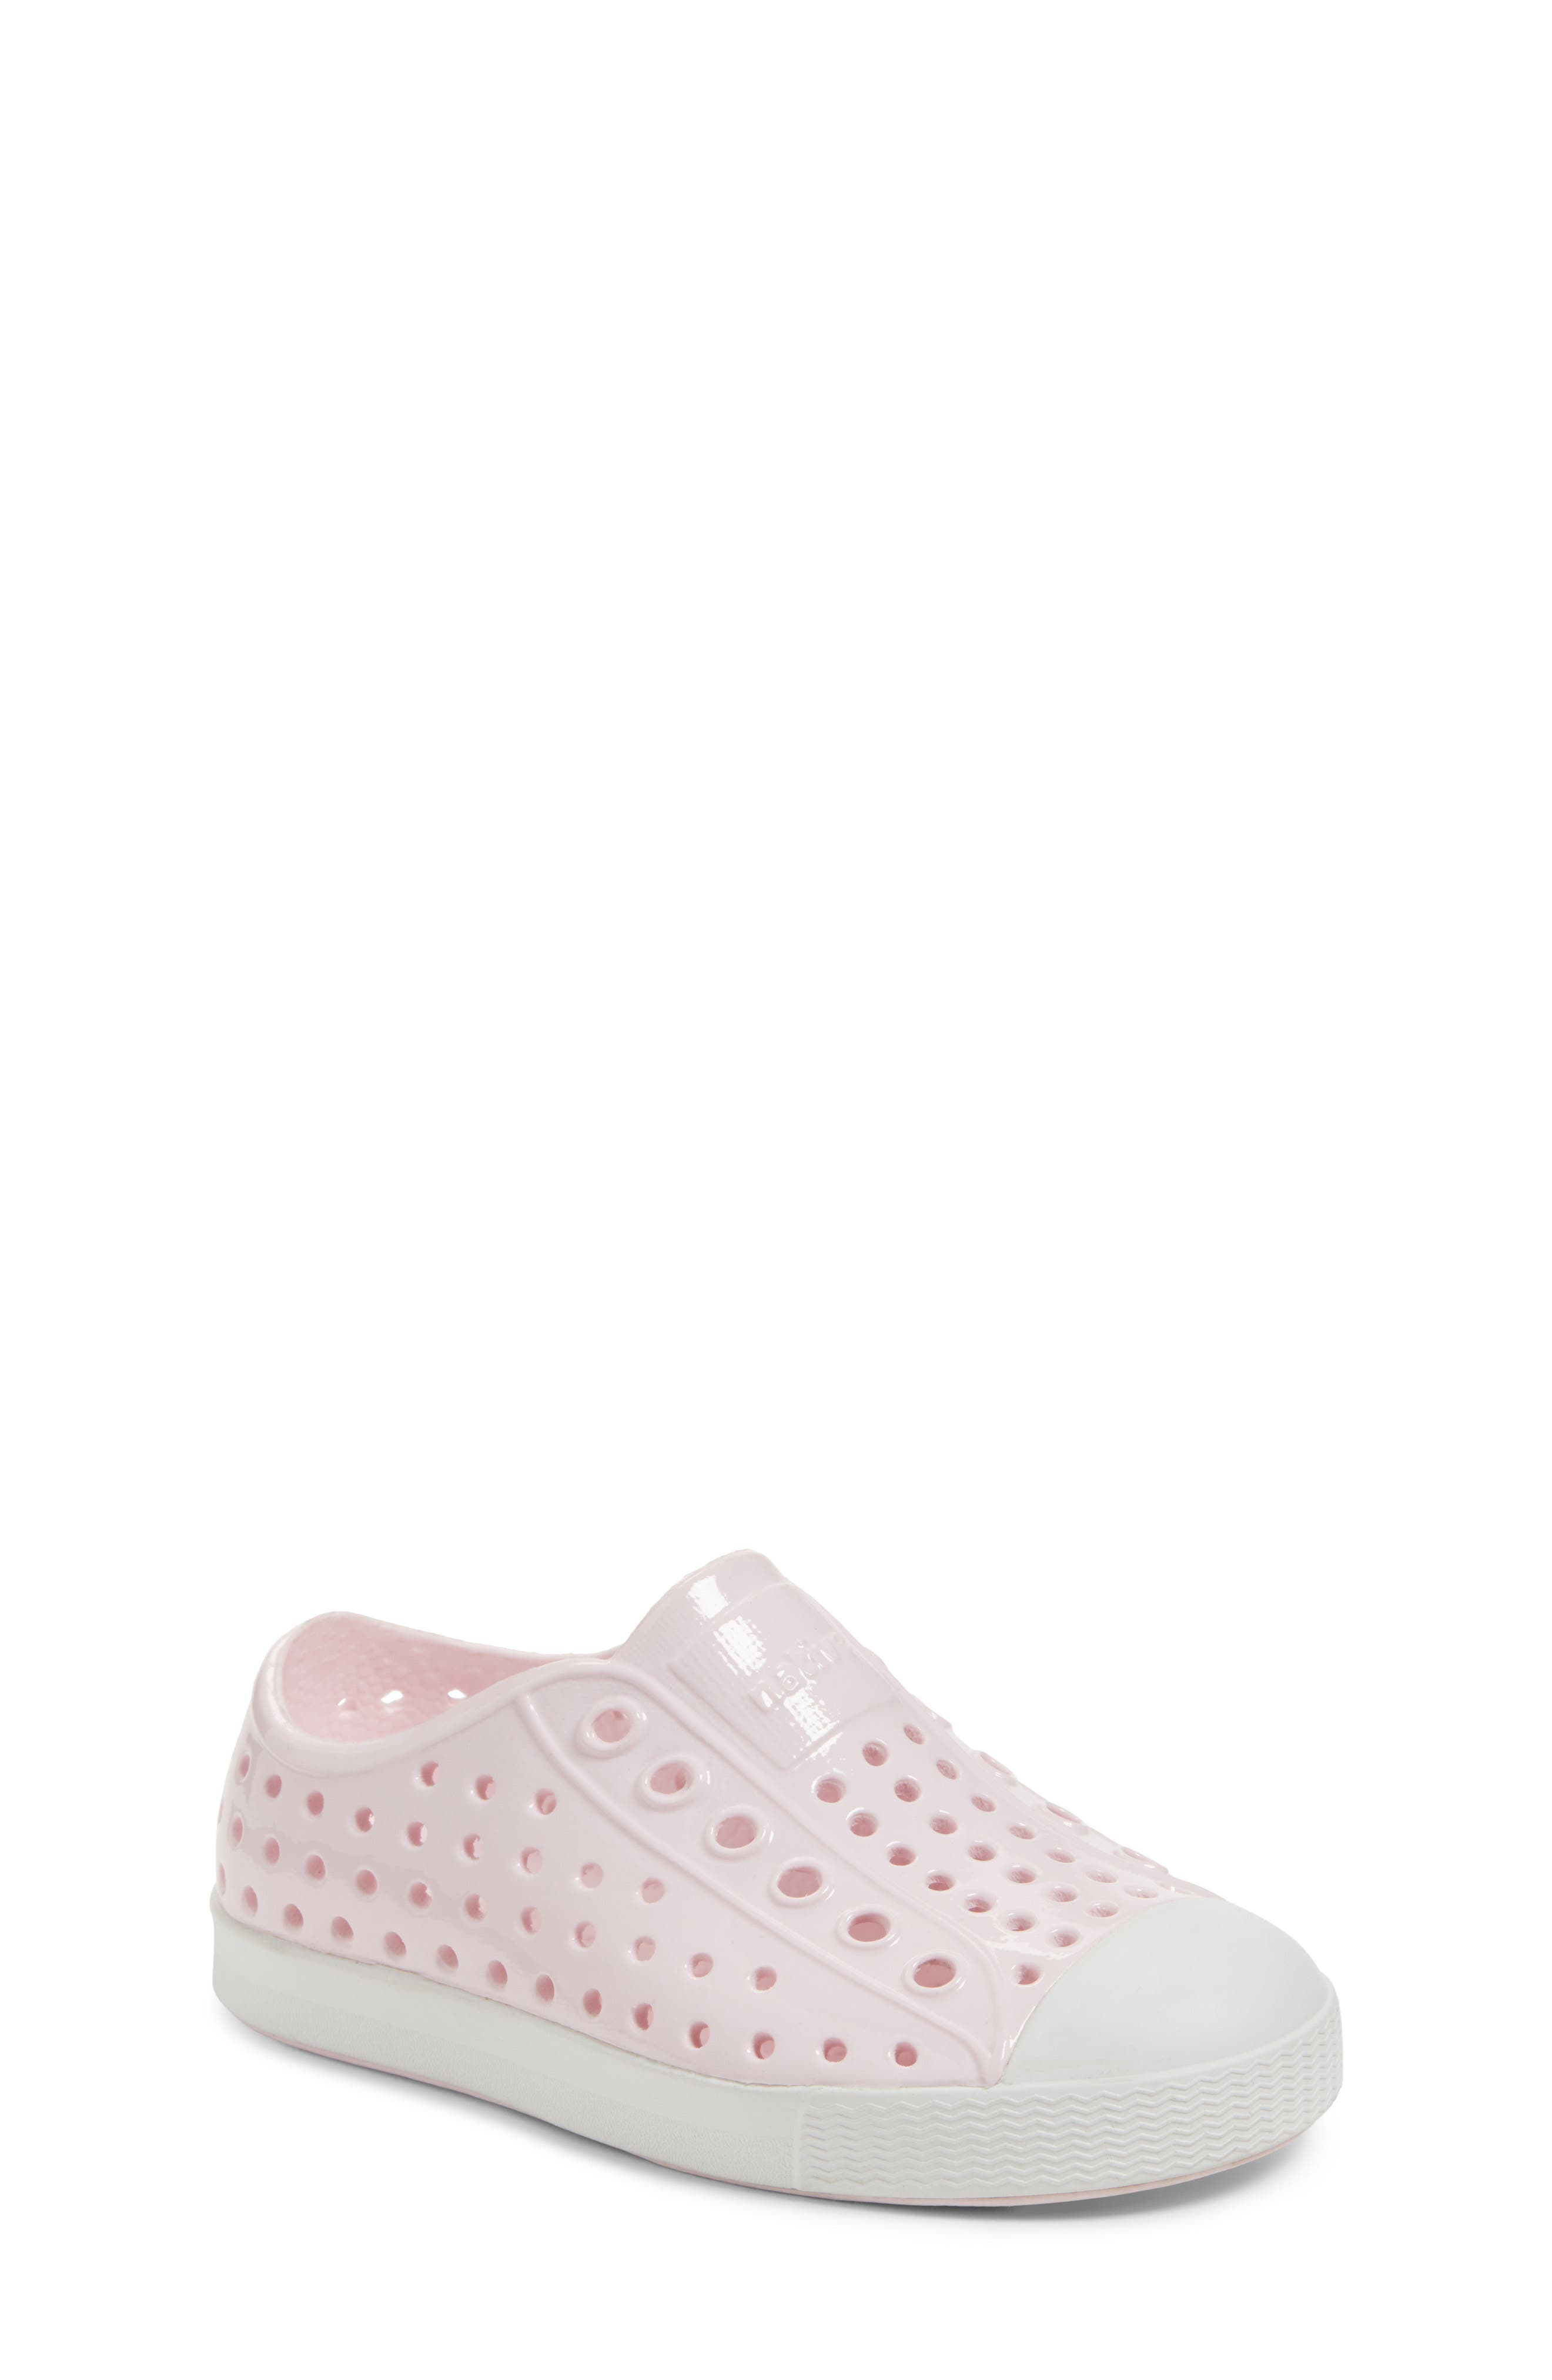 Alternate Image 1 Selected - Native Shoes Jefferson Glossy Slip-On Sneaker (Baby, Walker, Toddler & Little Kid)